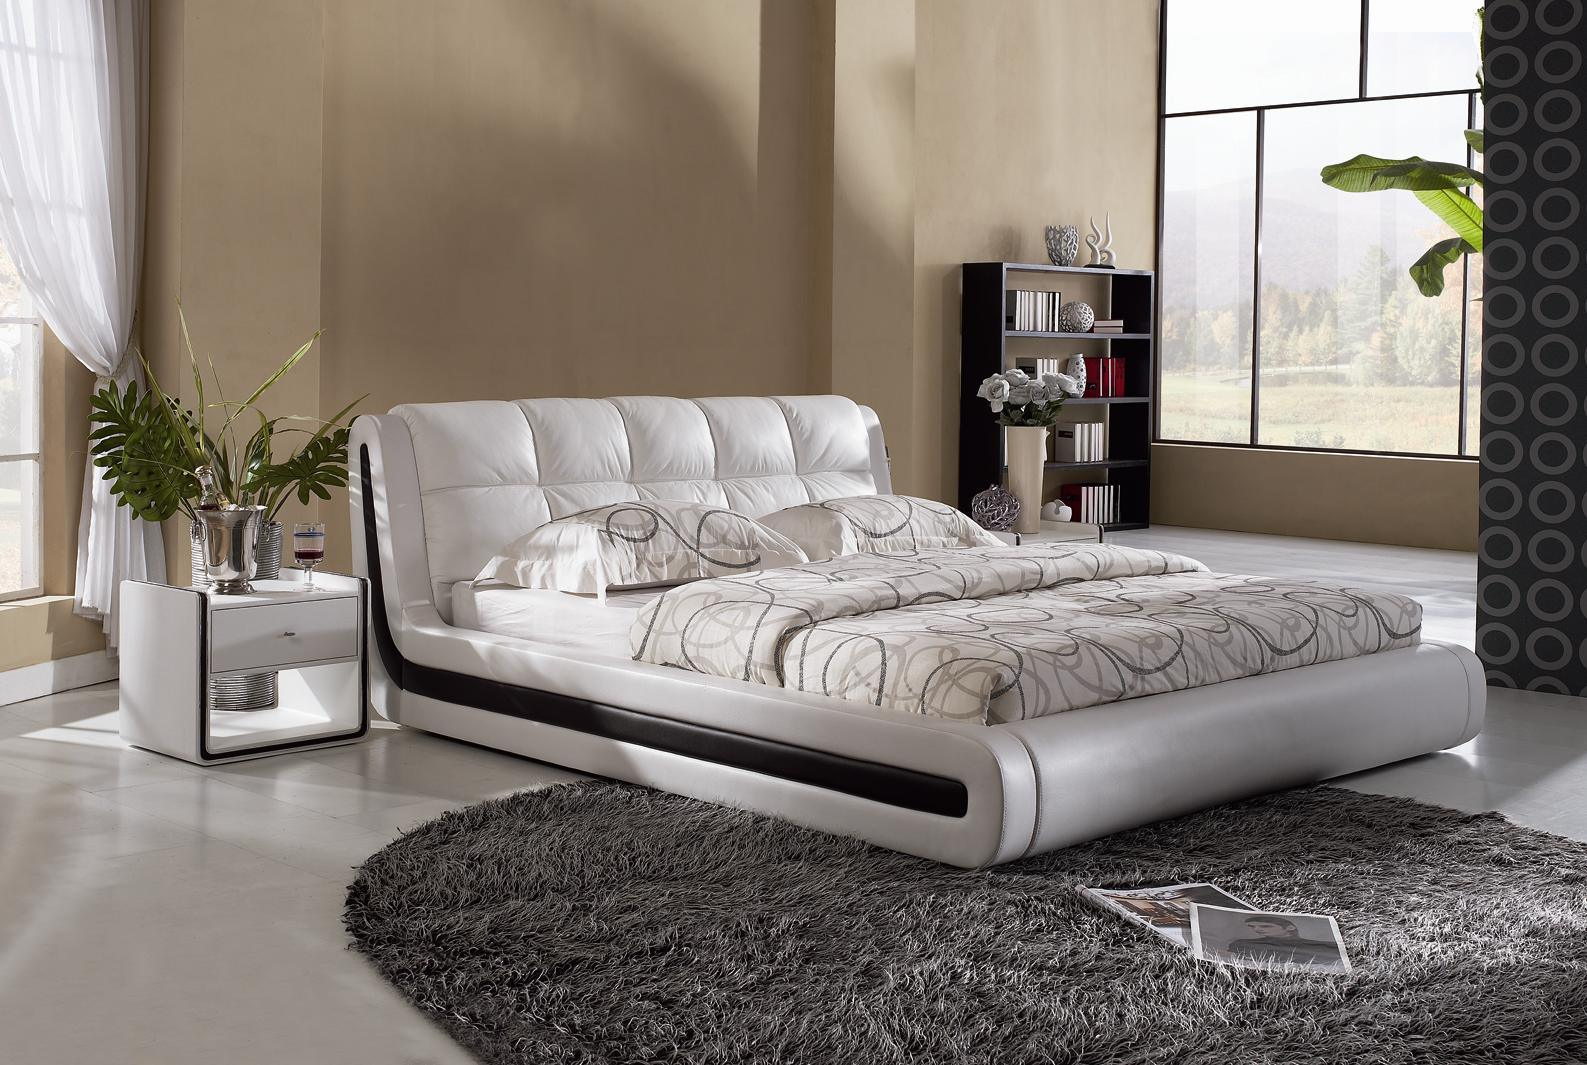 Modern beds design pictures simple home decoration - Design of bed ...